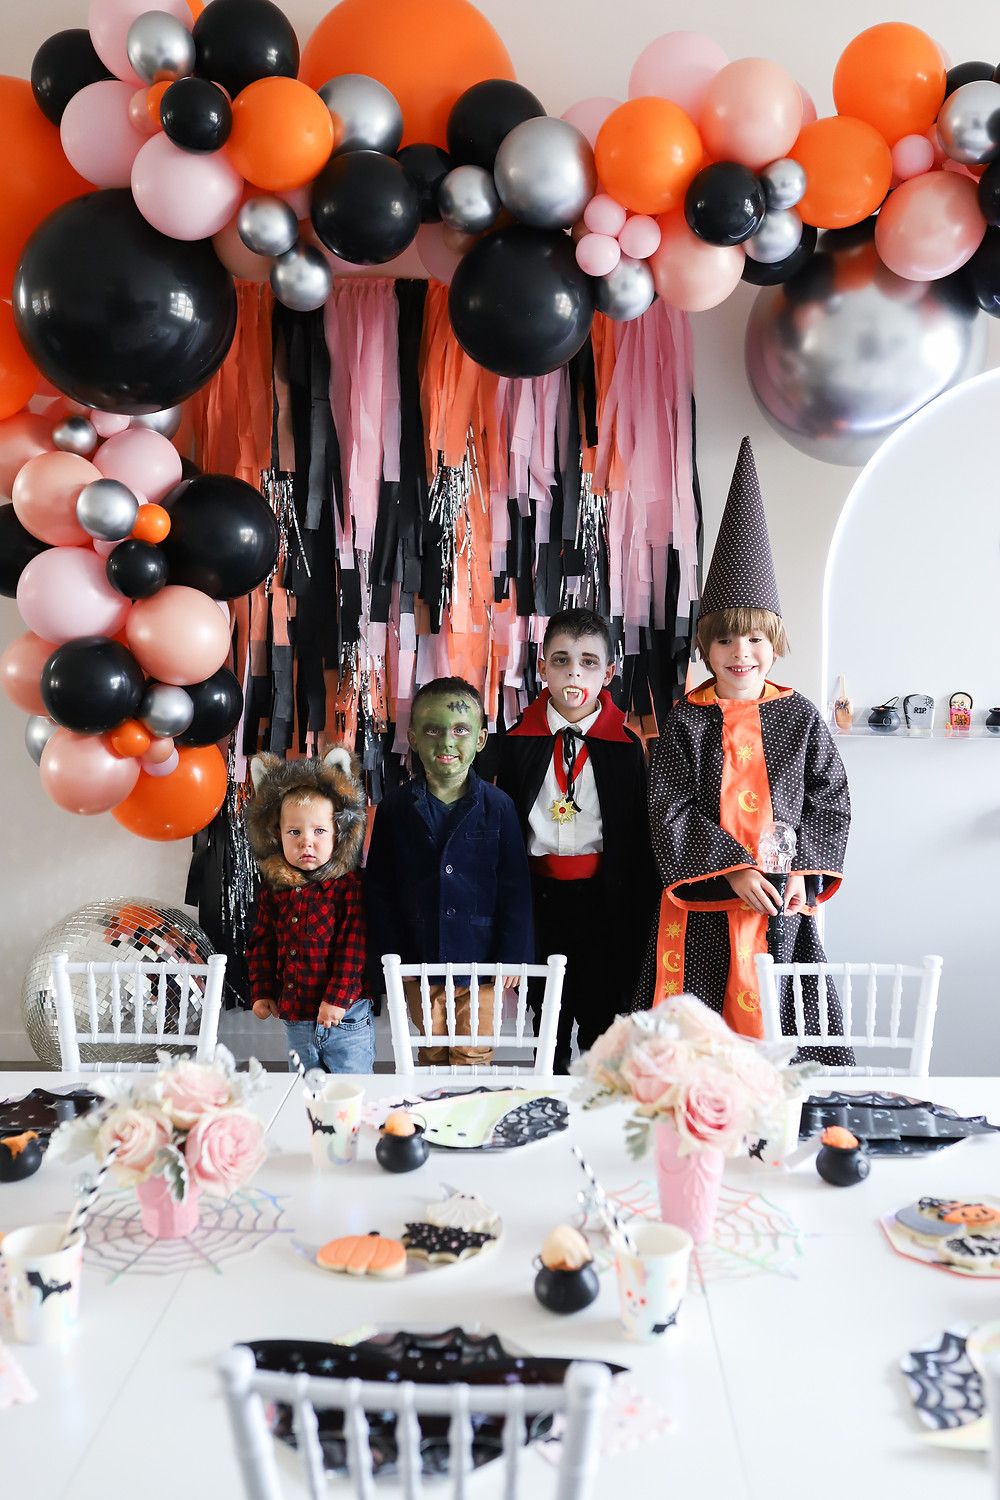 A kids Halloween party with children dressed up in a red lumberjack bear, Frankenstein, Dracula and a wizard costume getting ready to sit at the children's white table set up with pink roses, black bat paper plates and pumpkin decorations.